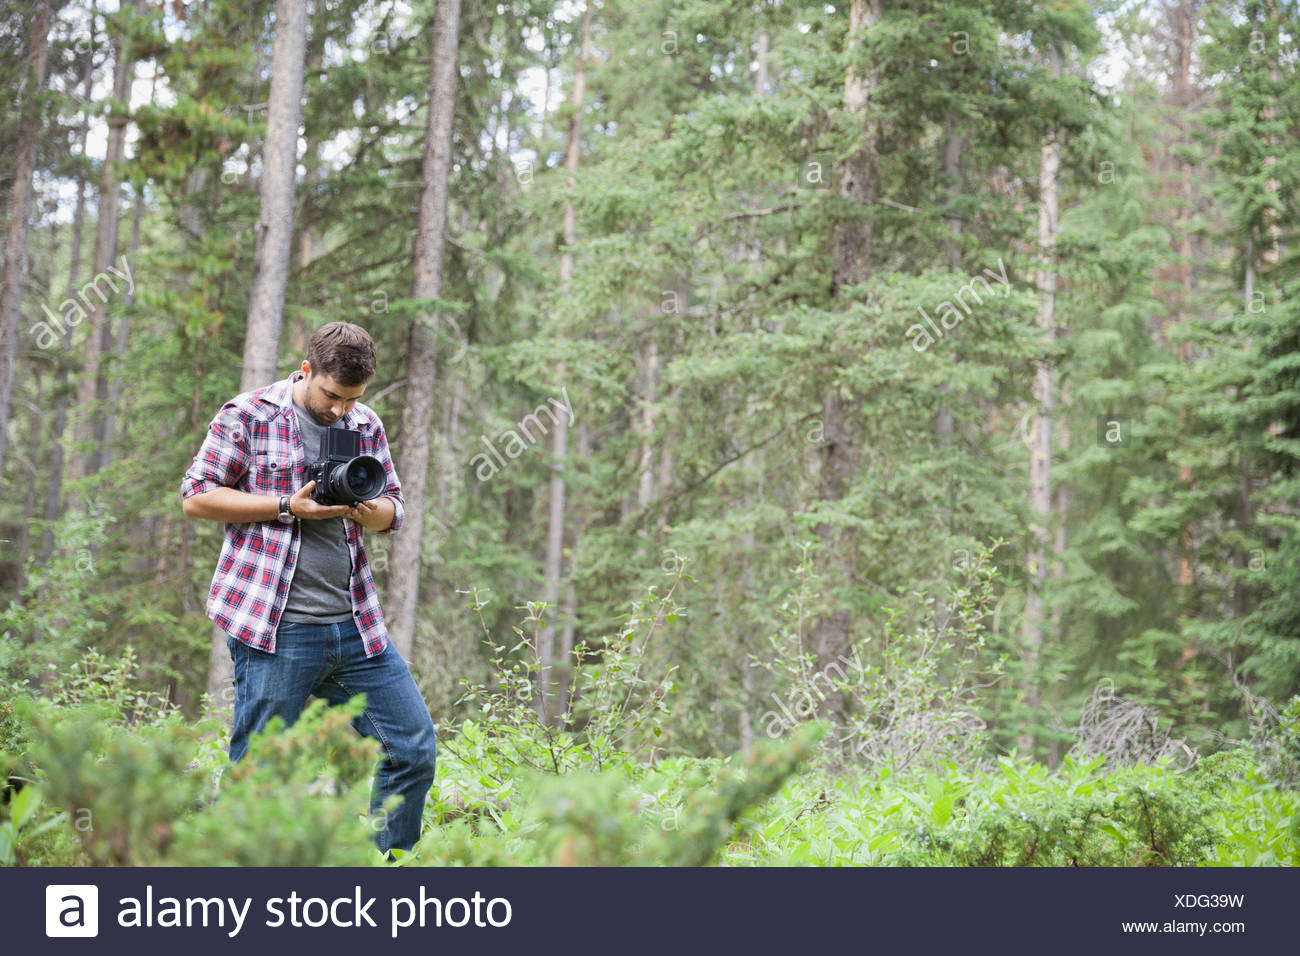 Male photographer using an SLR camera outdoors - Stock Image